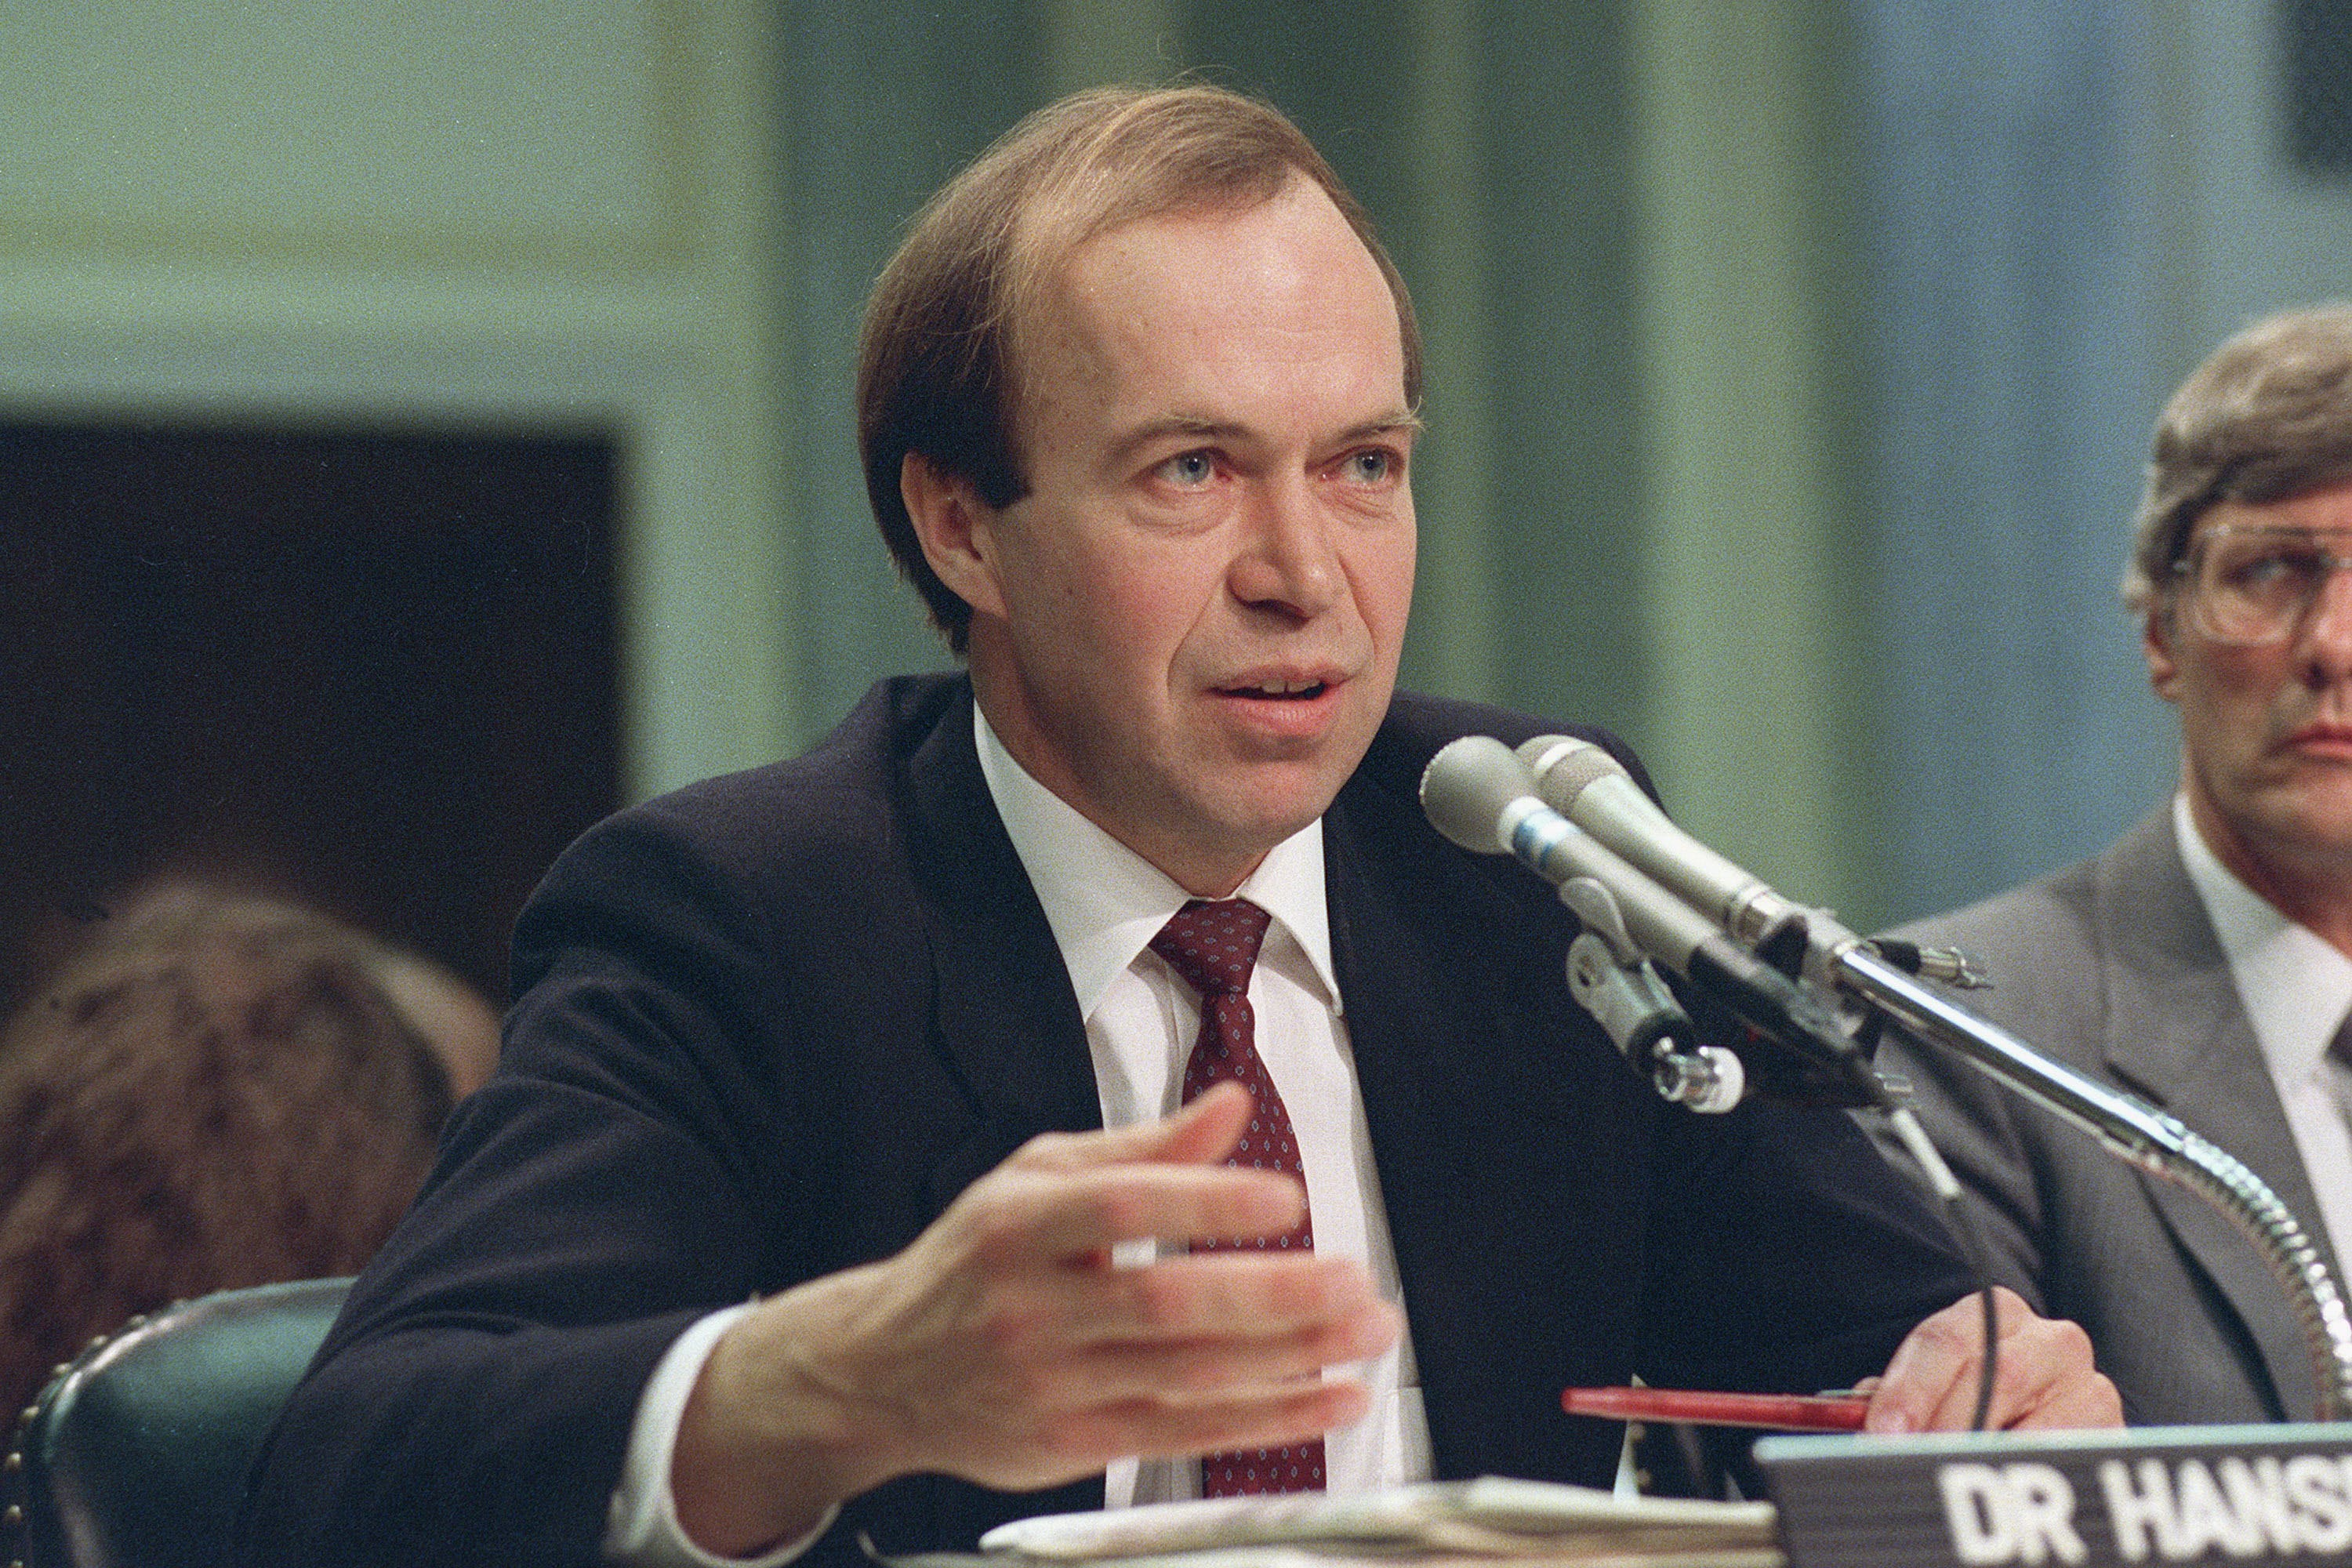 FILE - In this May 9, 1989 file photo, Dr. James Hansen, director of NASA's Goddard Institute for Space Studies in New York, testifies before a Senate Transportation subcommittee on Capitol Hill in Washington, D.C., a year after his history-making testimony telling the world that global warming was here and would get worse. (AP Photo/Dennis Cook, File)